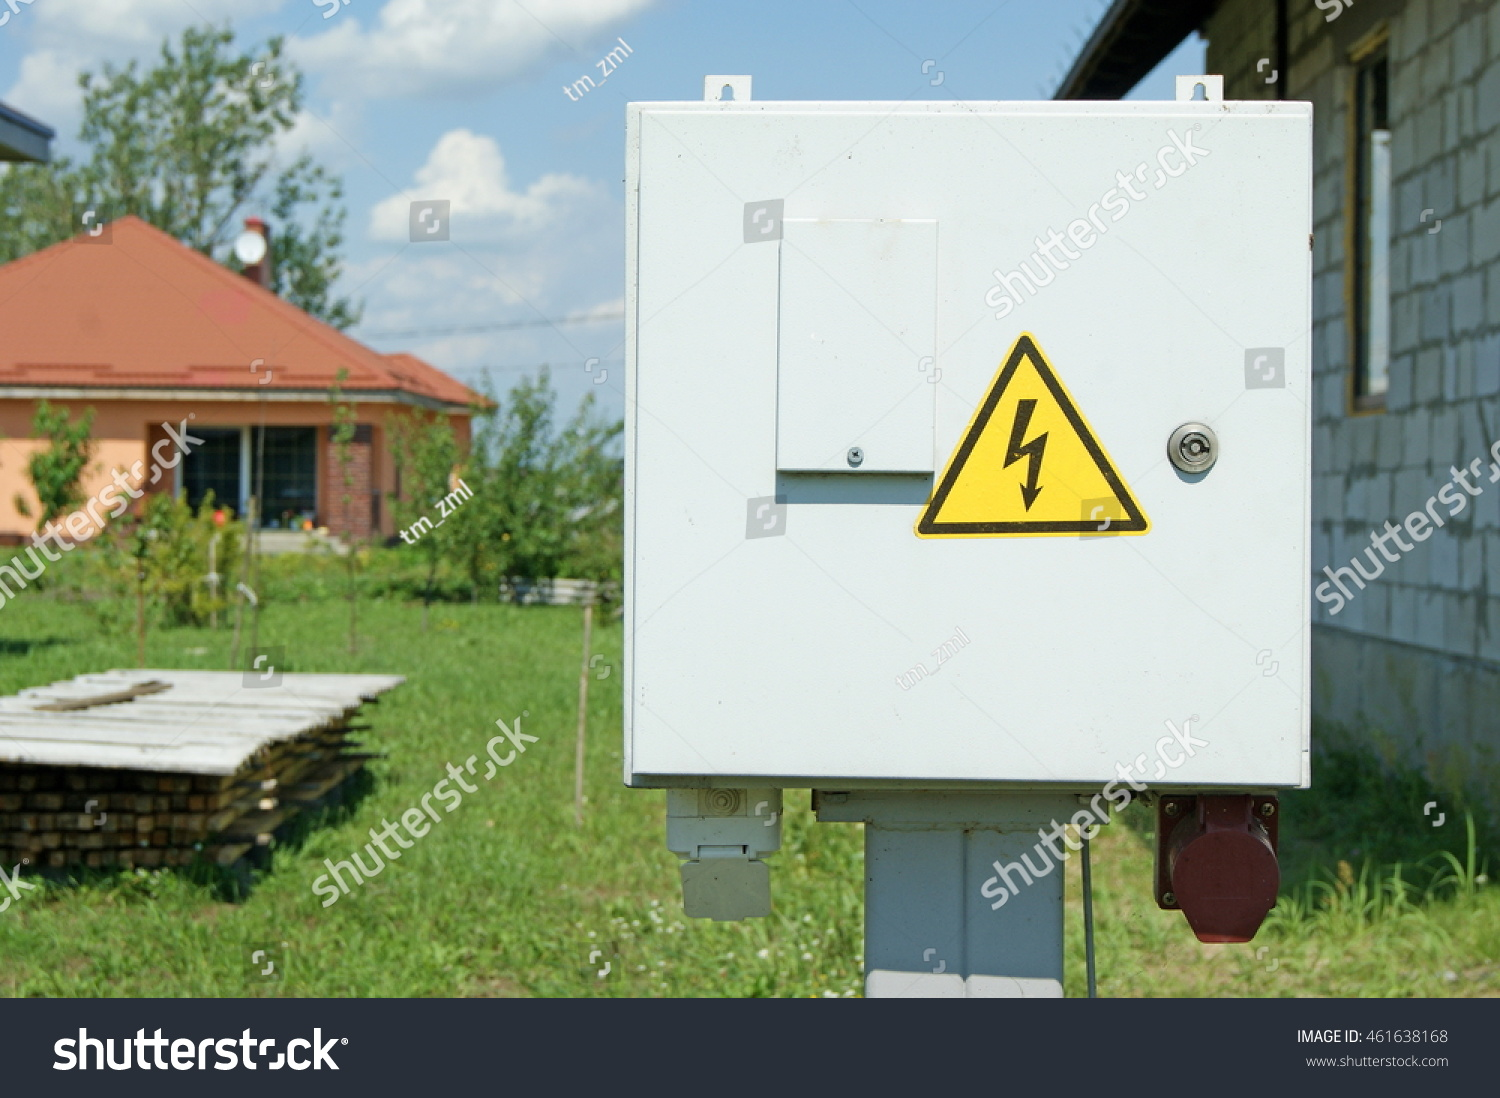 Power Distribution Wiring Switchboard Panel Outdoor Stock Photo Box Unit Distributing Board Compartment Yellow High Voltage